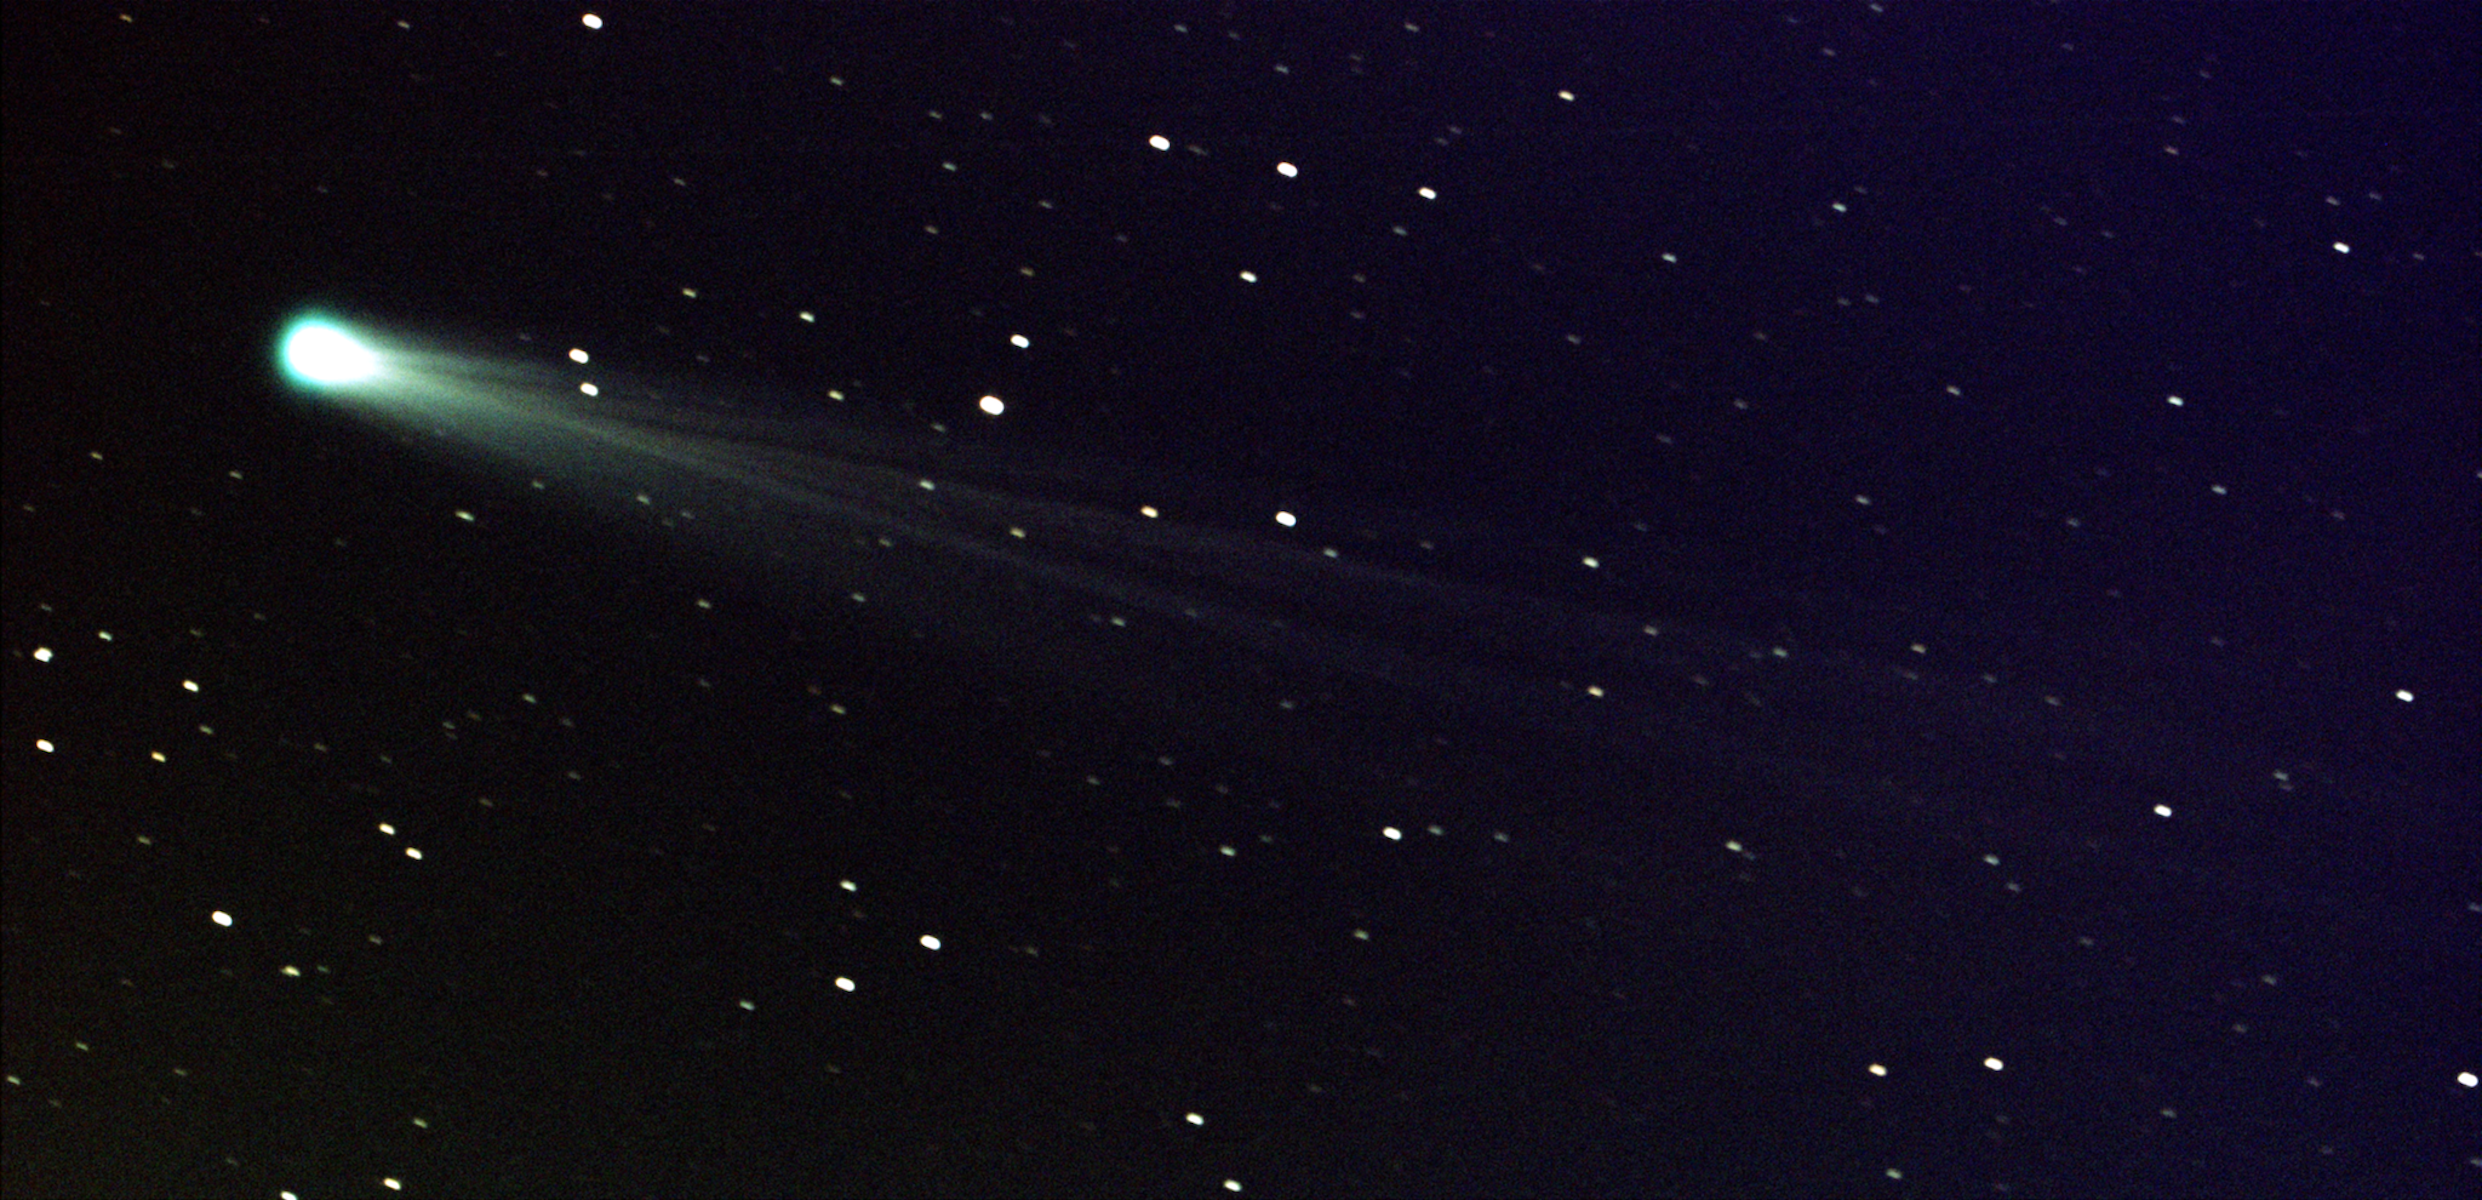 Promising Comet ISON Gets Brighter, But Will It Really Sizzle?